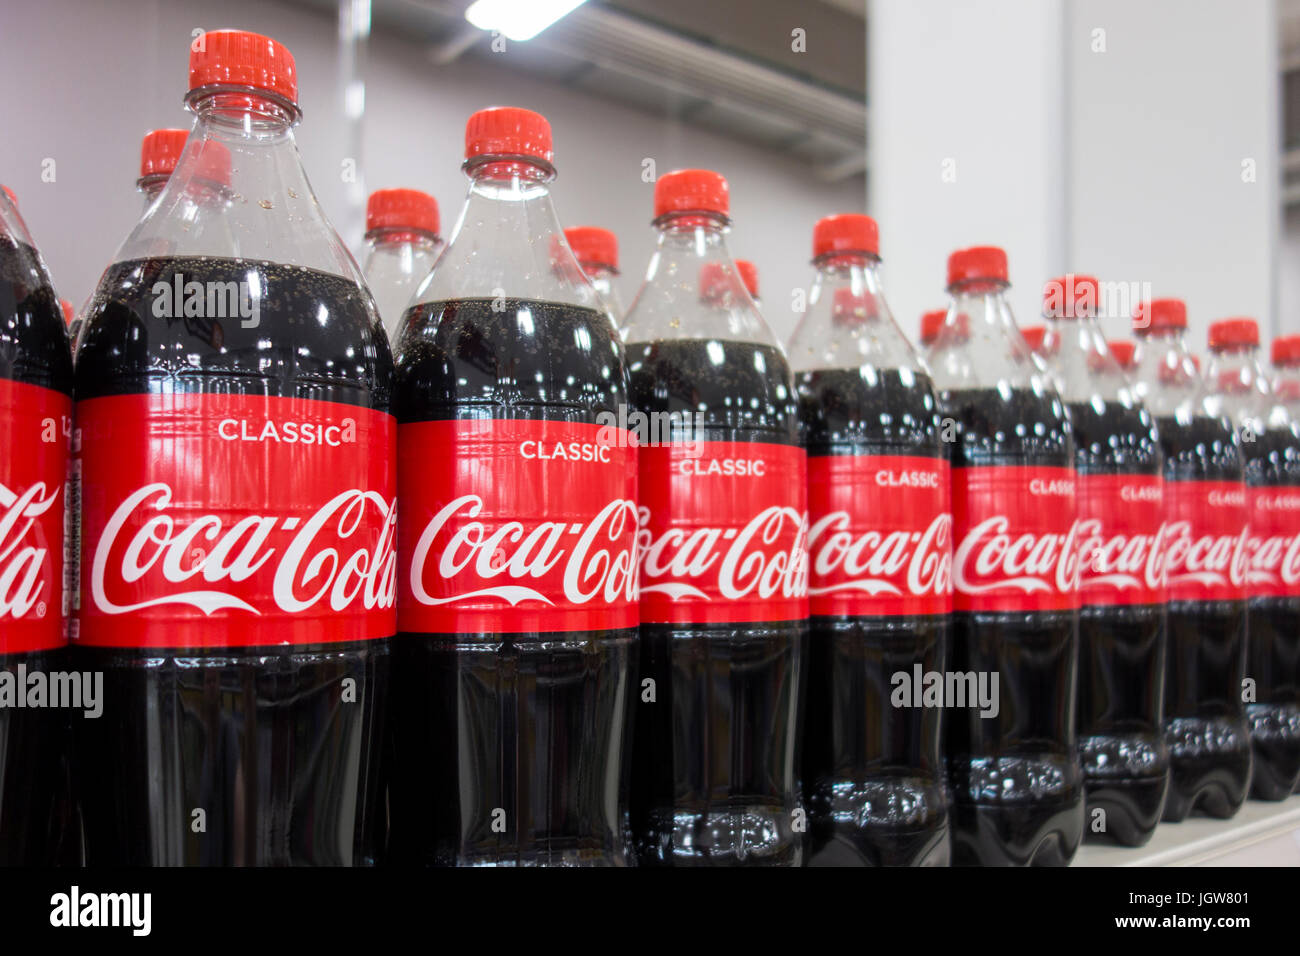 coca cola bottles in supermarket in stockfotos coca cola bottles in supermarket in bilder alamy. Black Bedroom Furniture Sets. Home Design Ideas